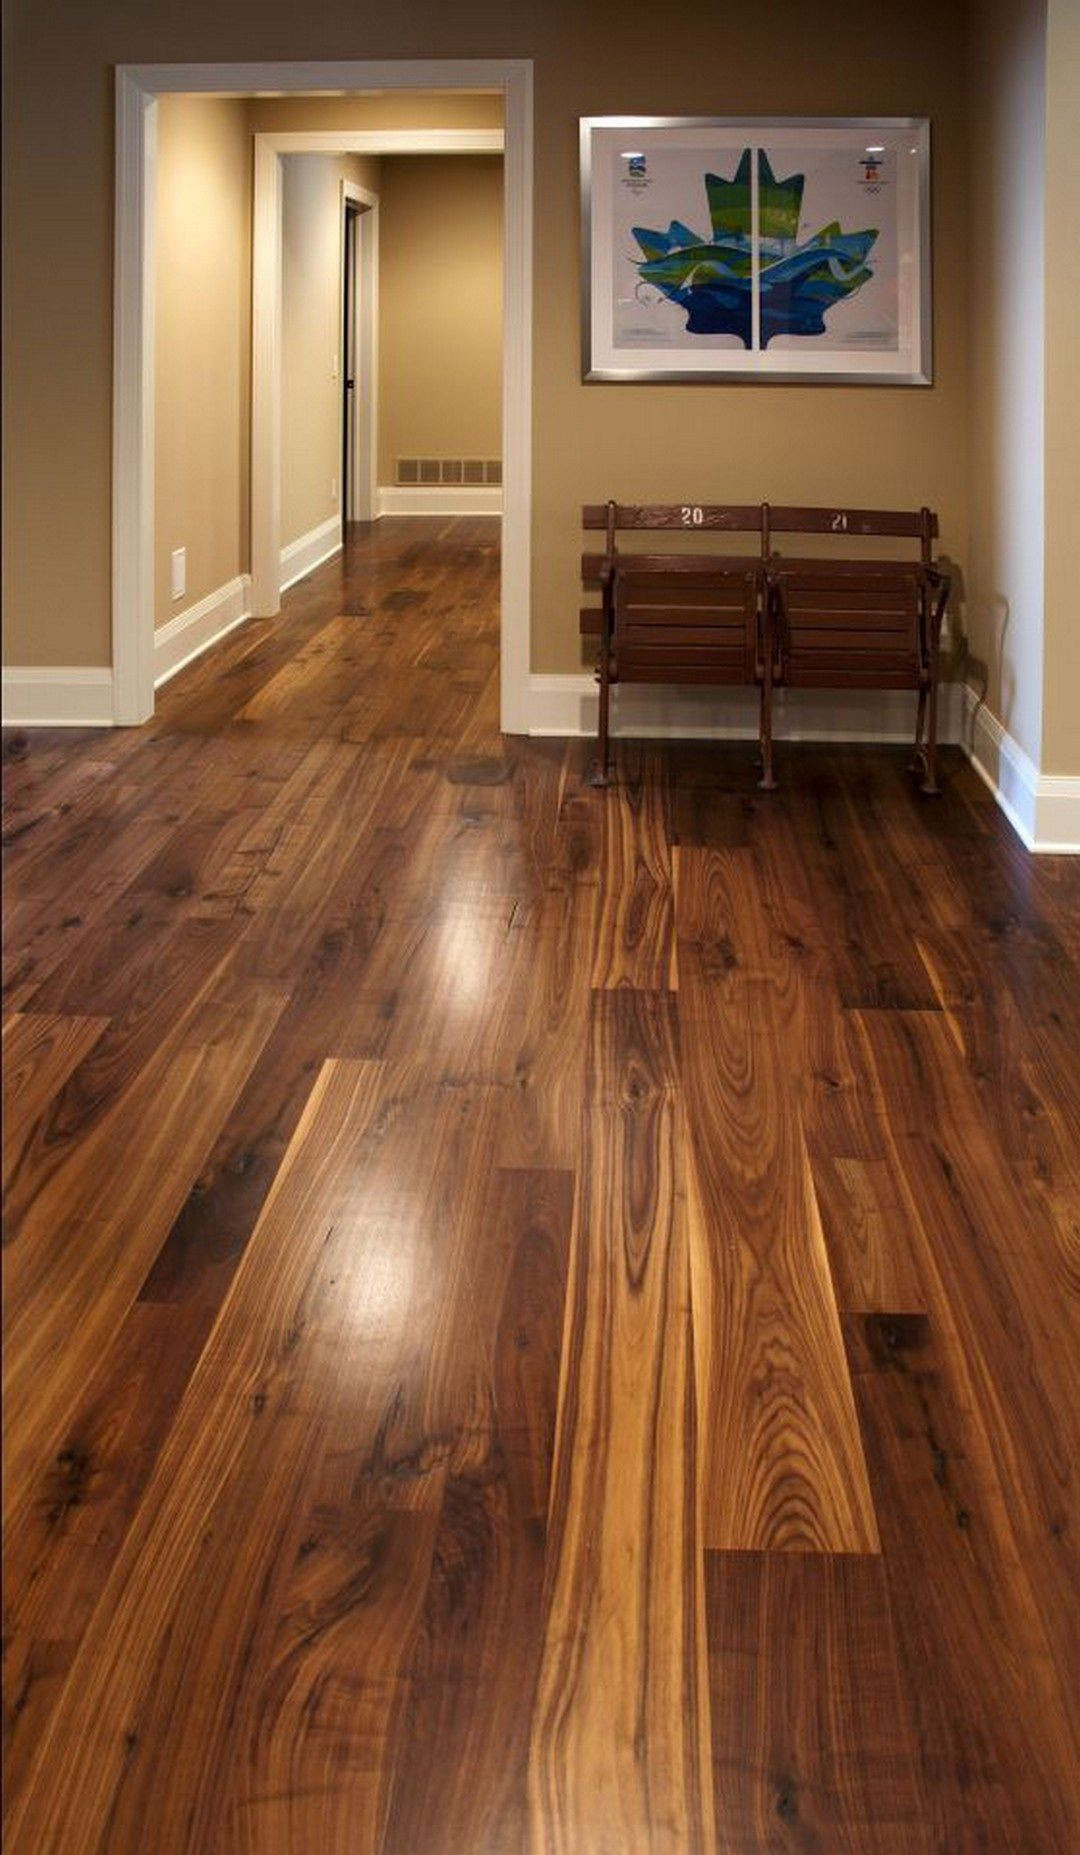 acacia walnut engineered hardwood flooring of 60 perfect color wood flooring ideas for the home pinterest throughout perfect color wood flooring ideas 3